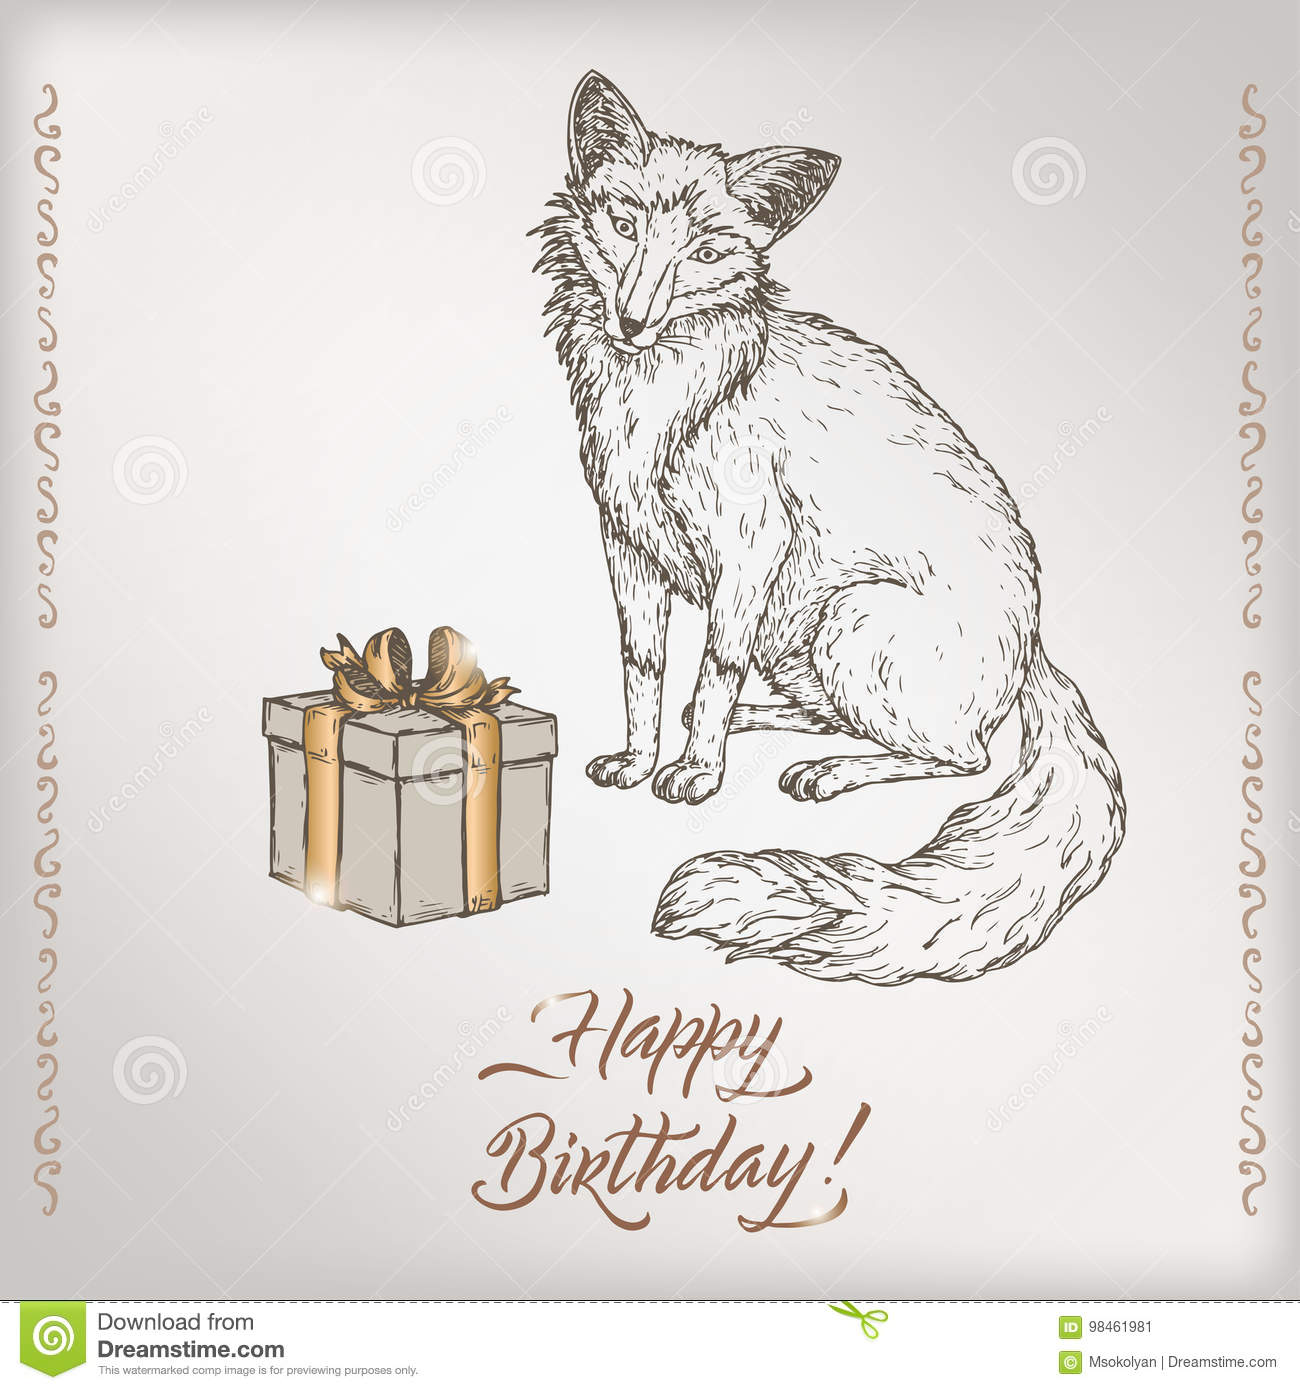 romantic vintage birthday card template with calligraphy fox and